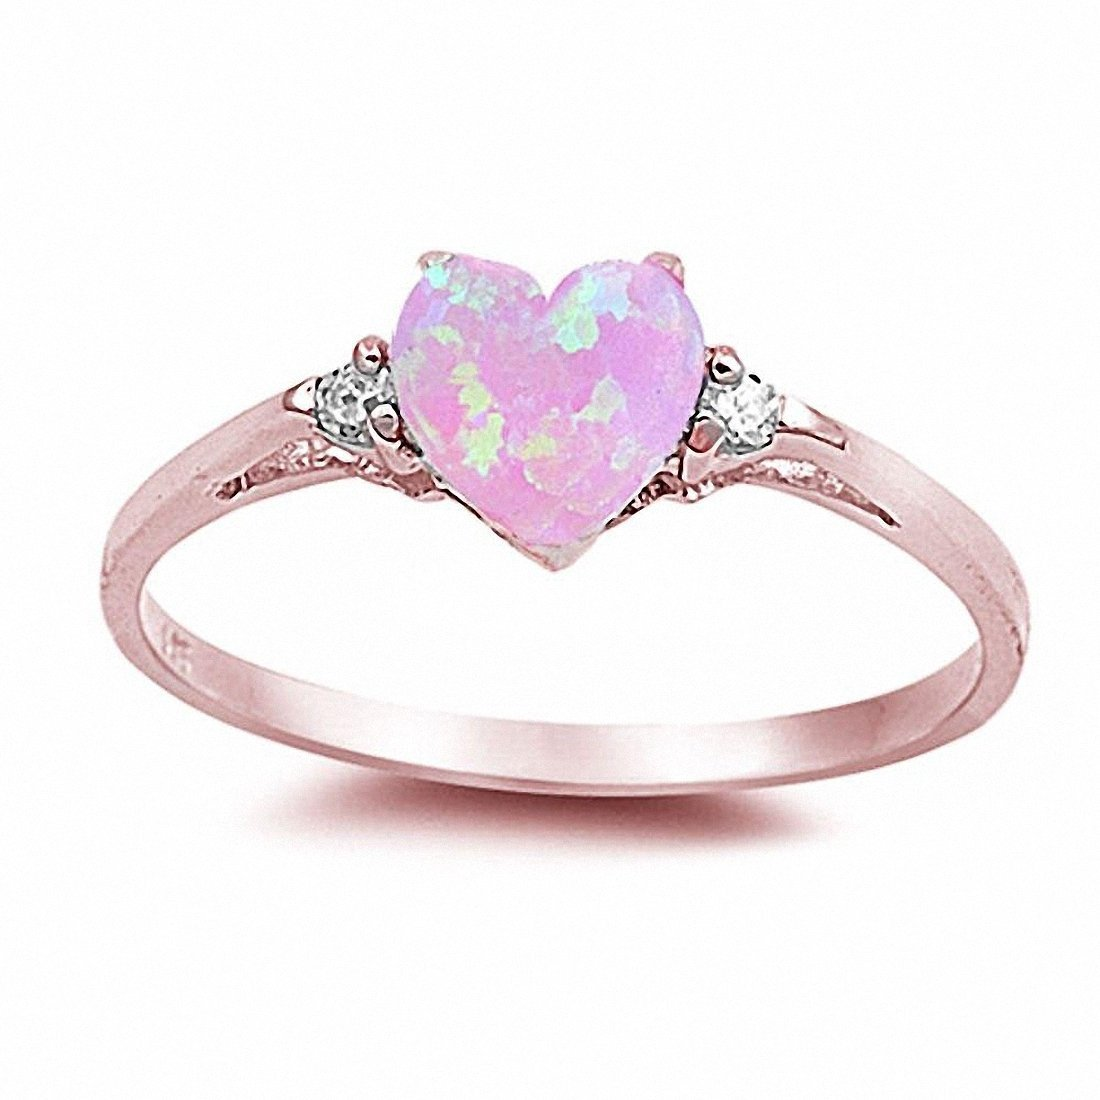 Wedding Engagement Heart Created Pink Opal Promise Ring CZ 925 Sterling Silver, Size-5